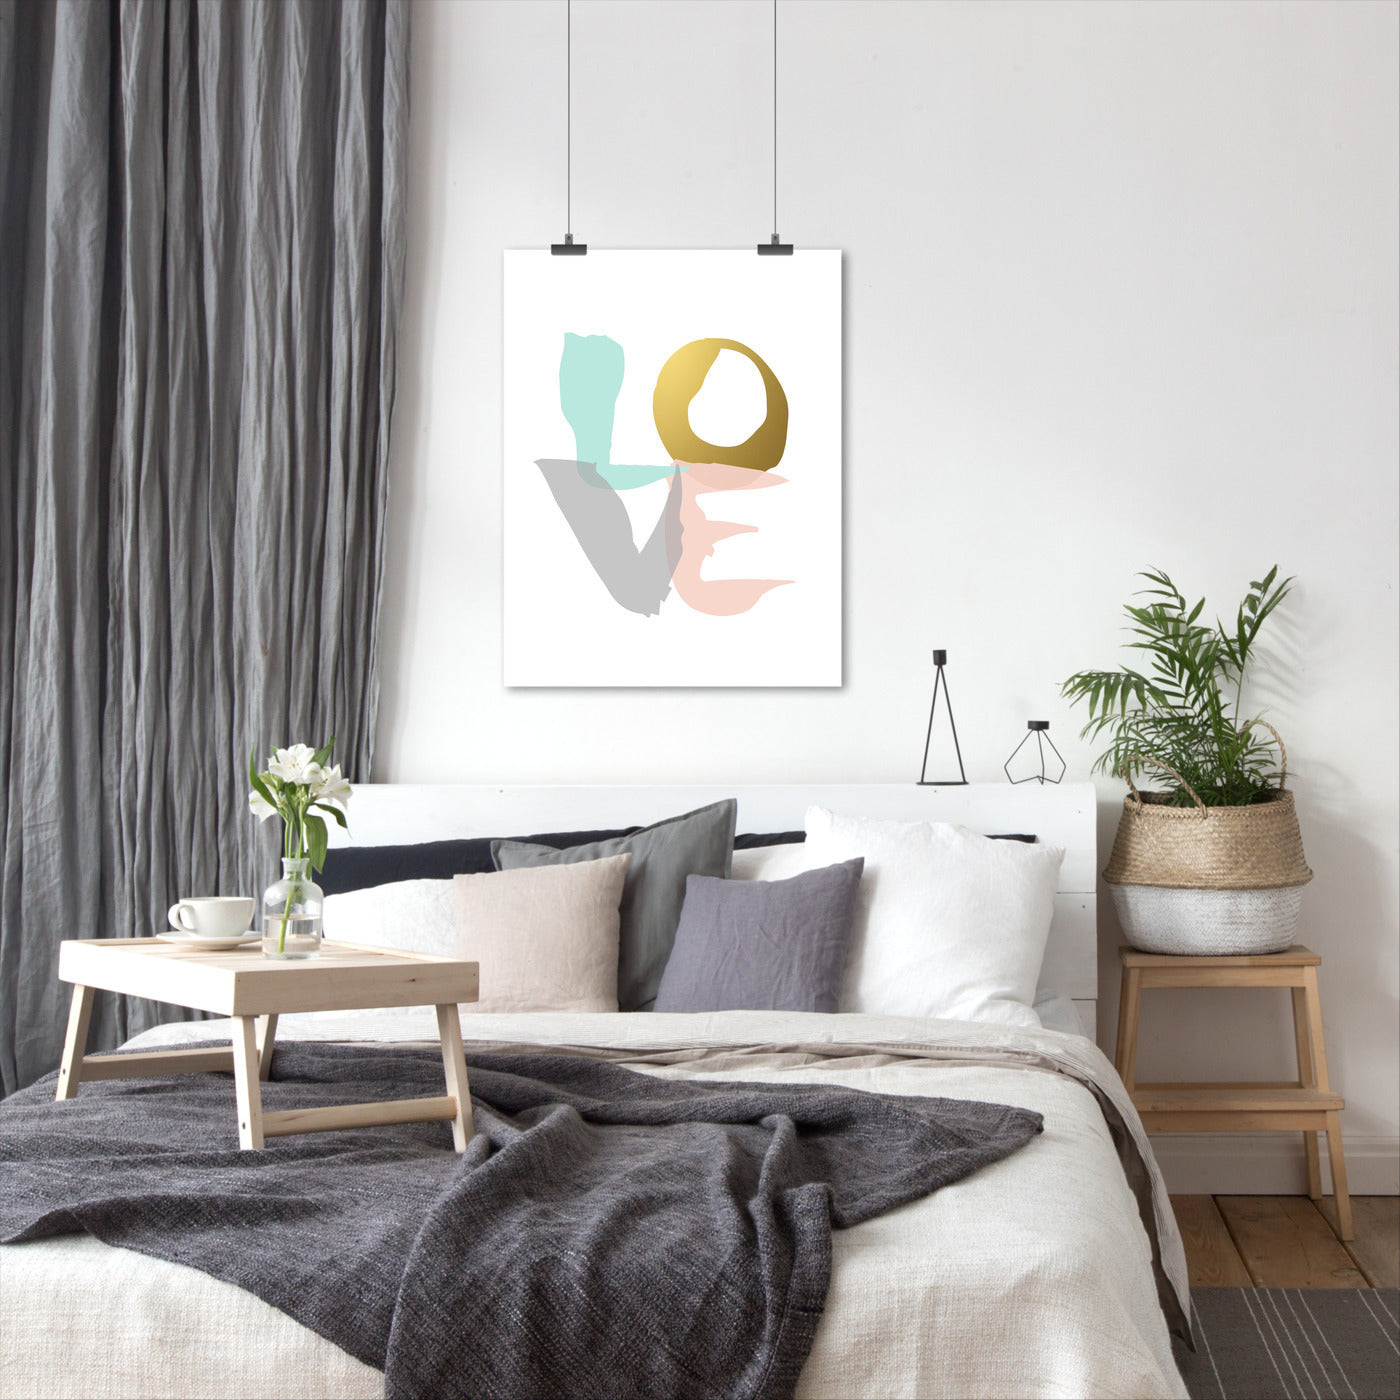 Love Mint Blush Gold by Wall + Wonder - Art Print - Americanflat